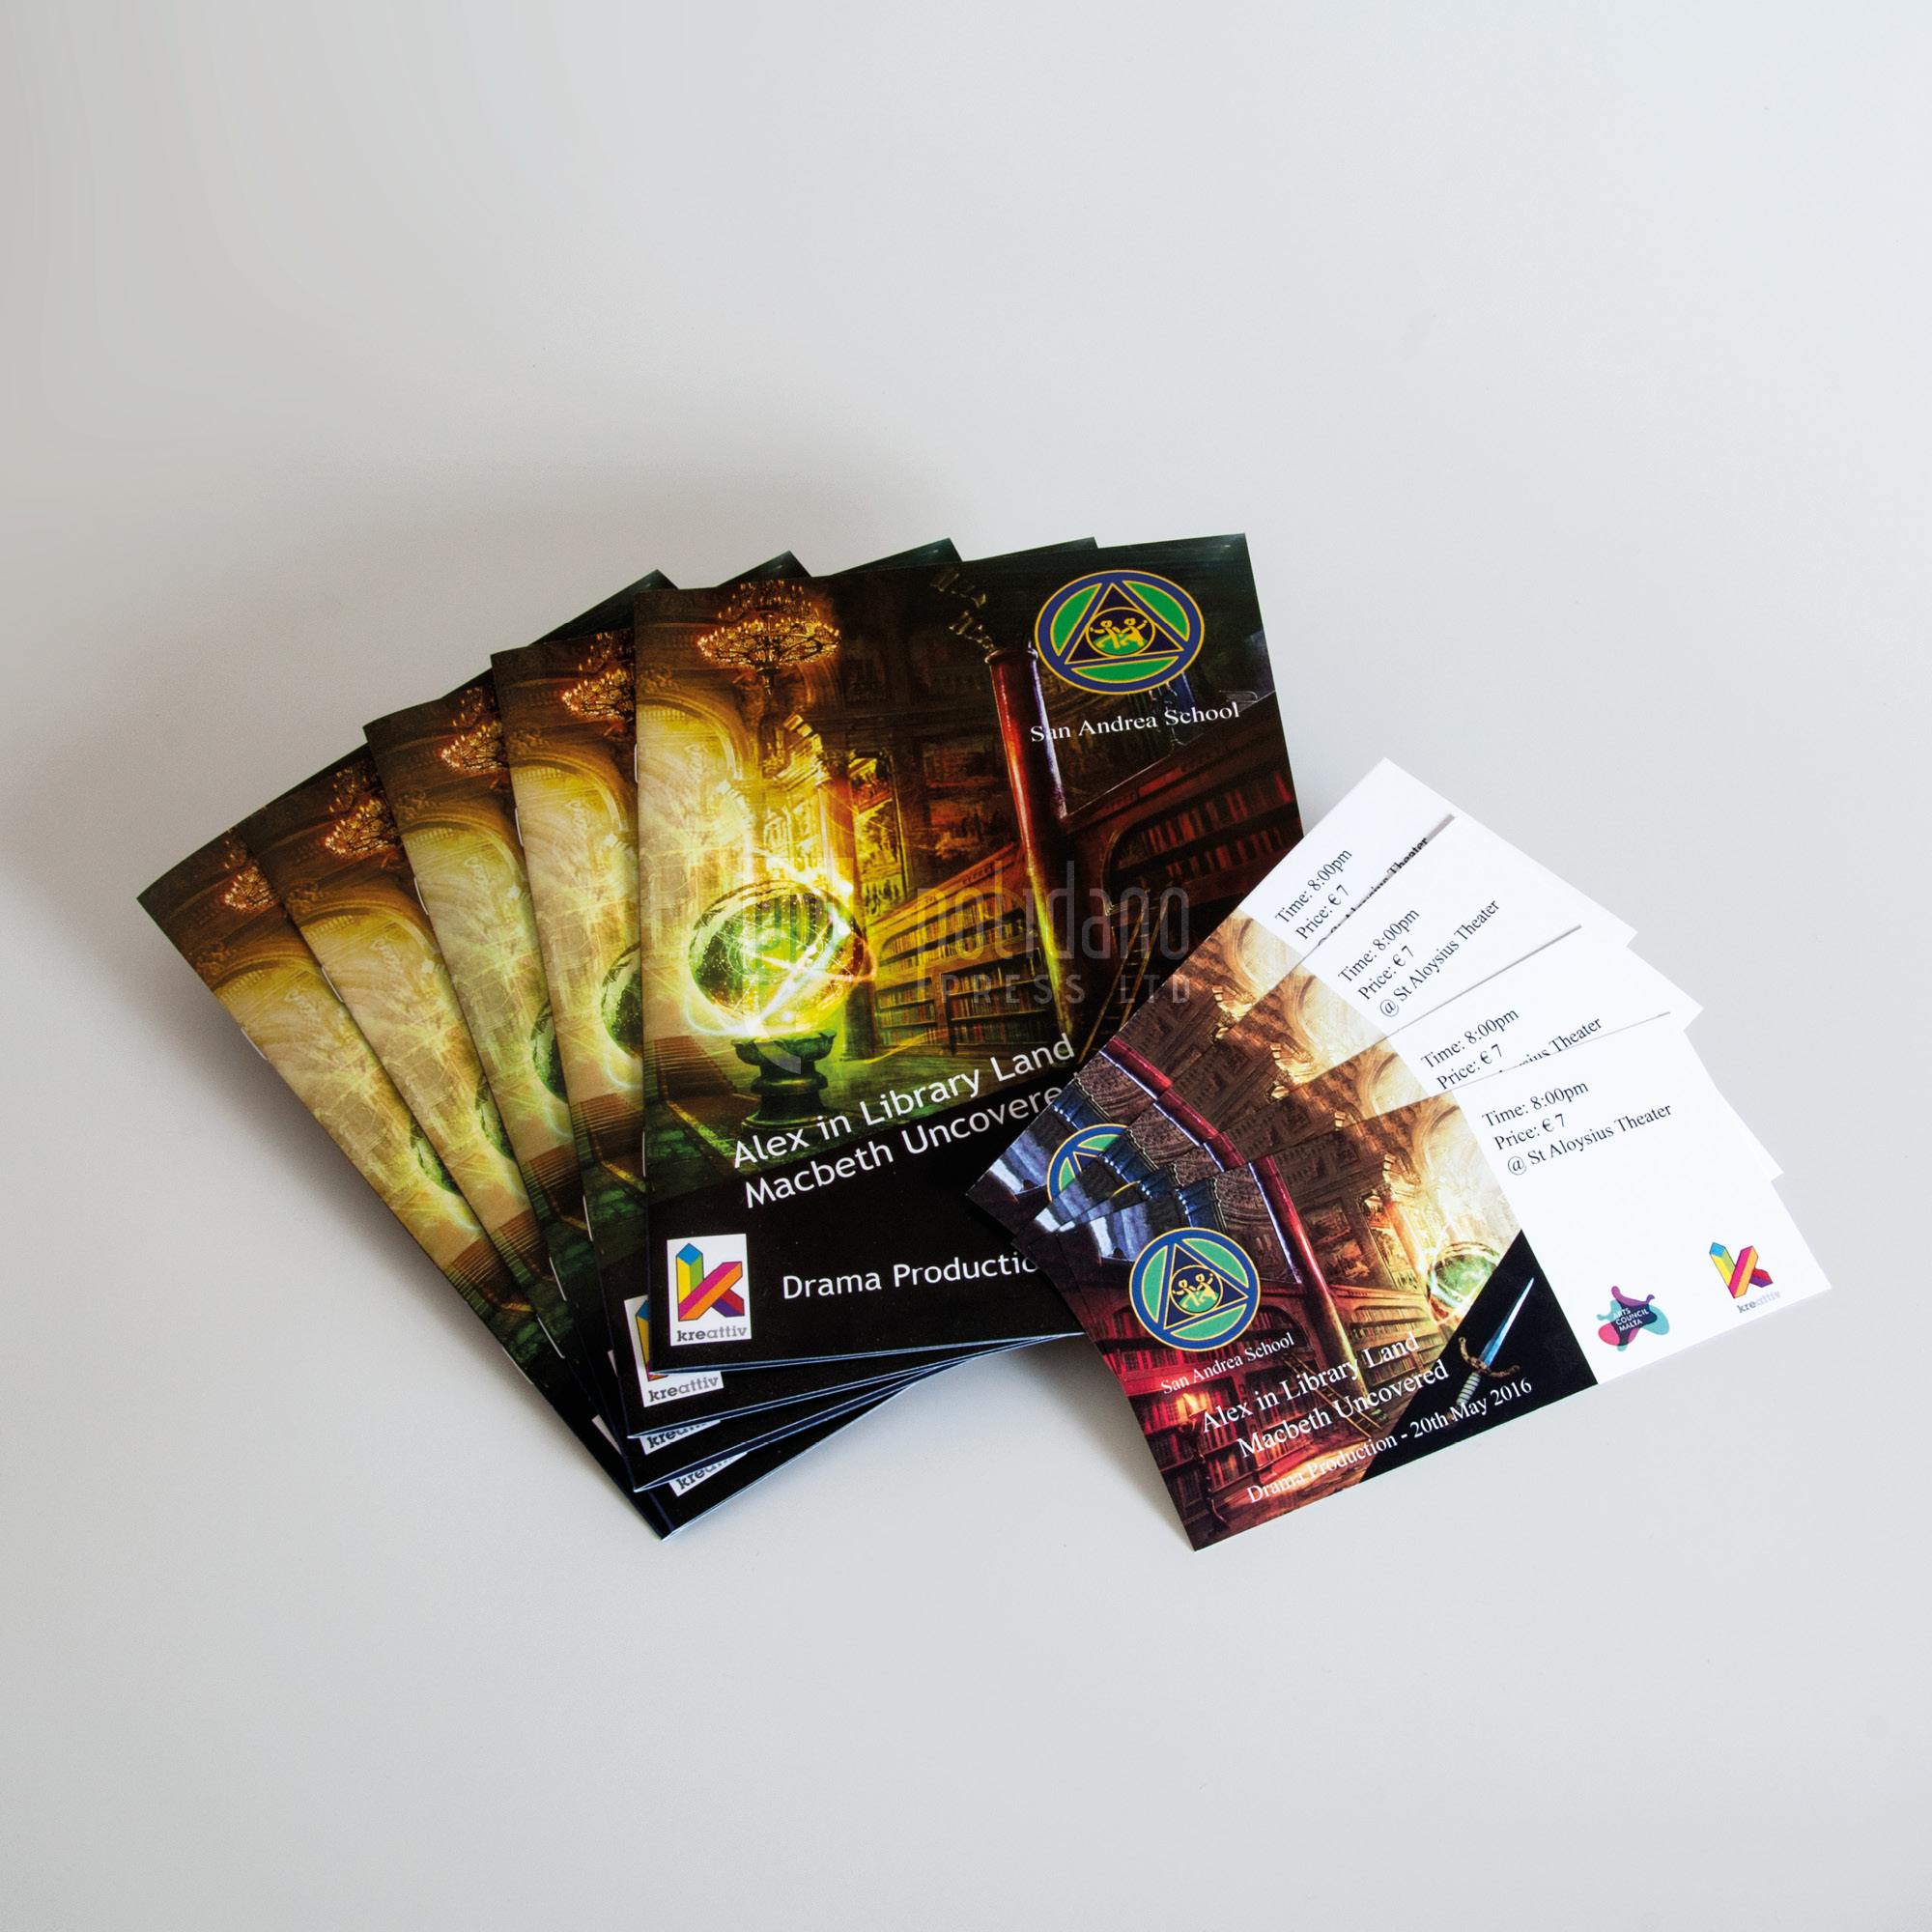 Booklets and tickets